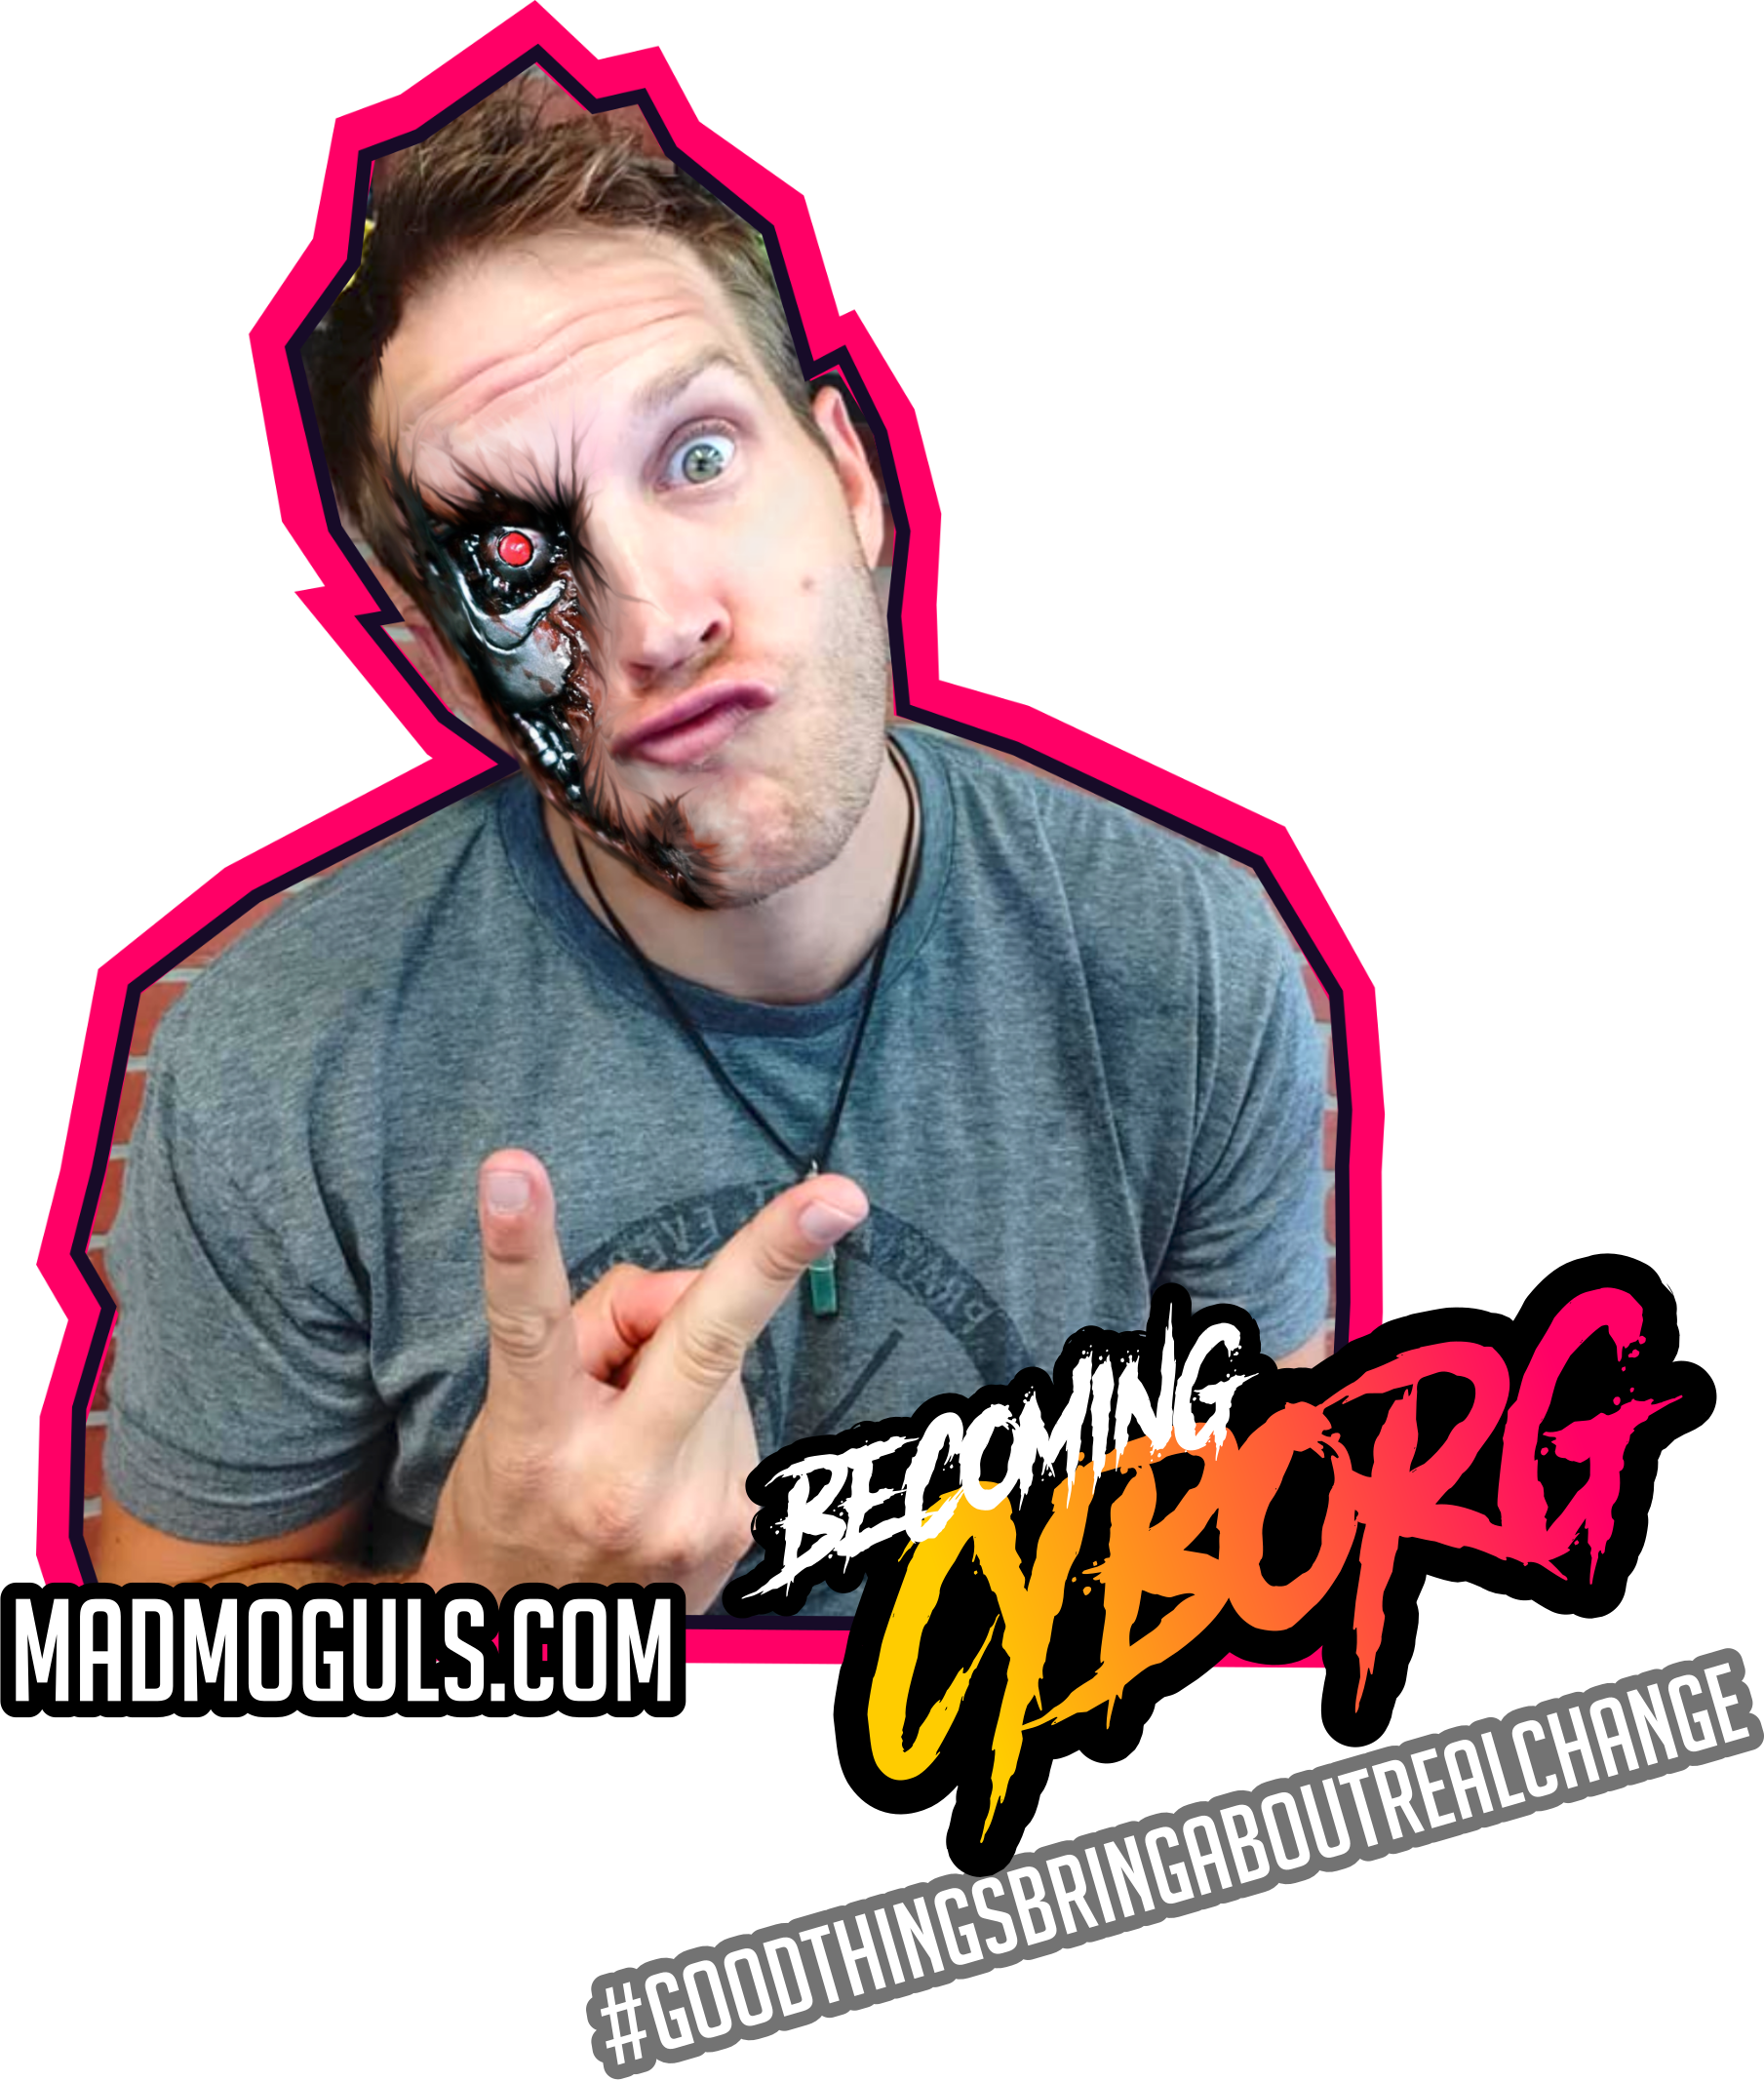 becoming cyborg with your mad moguls host of fantasticalness, Justin Young #madmoguls #cyborg #aiworld